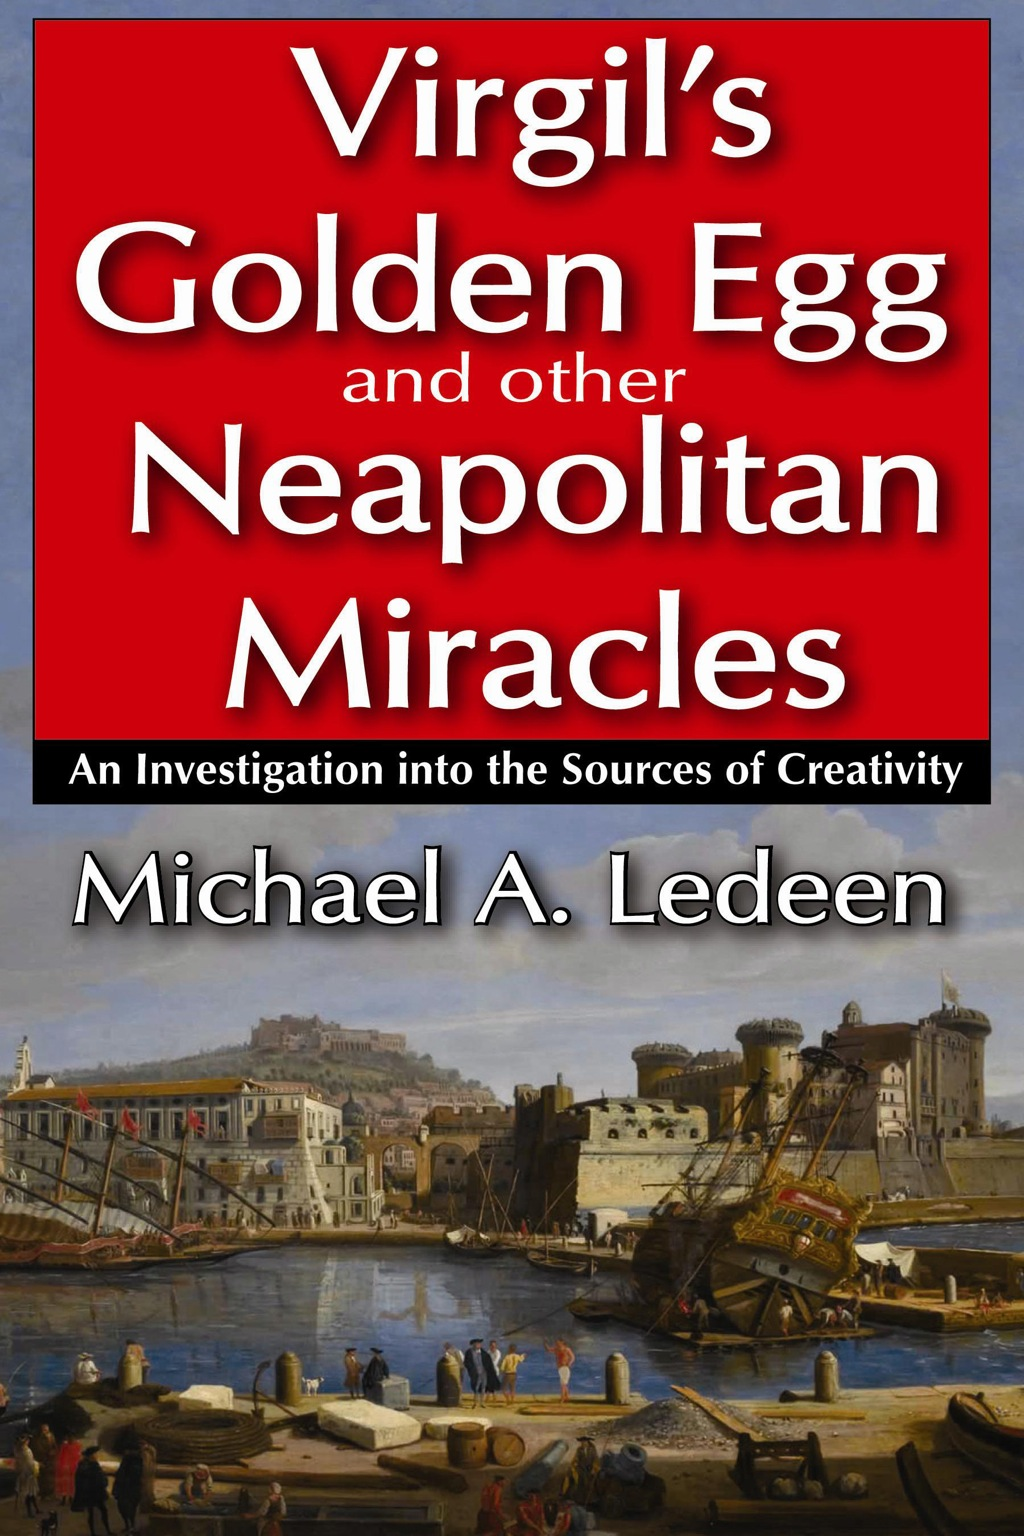 Virgil's Golden Egg and Other Neapolitan Miracles (eBook)